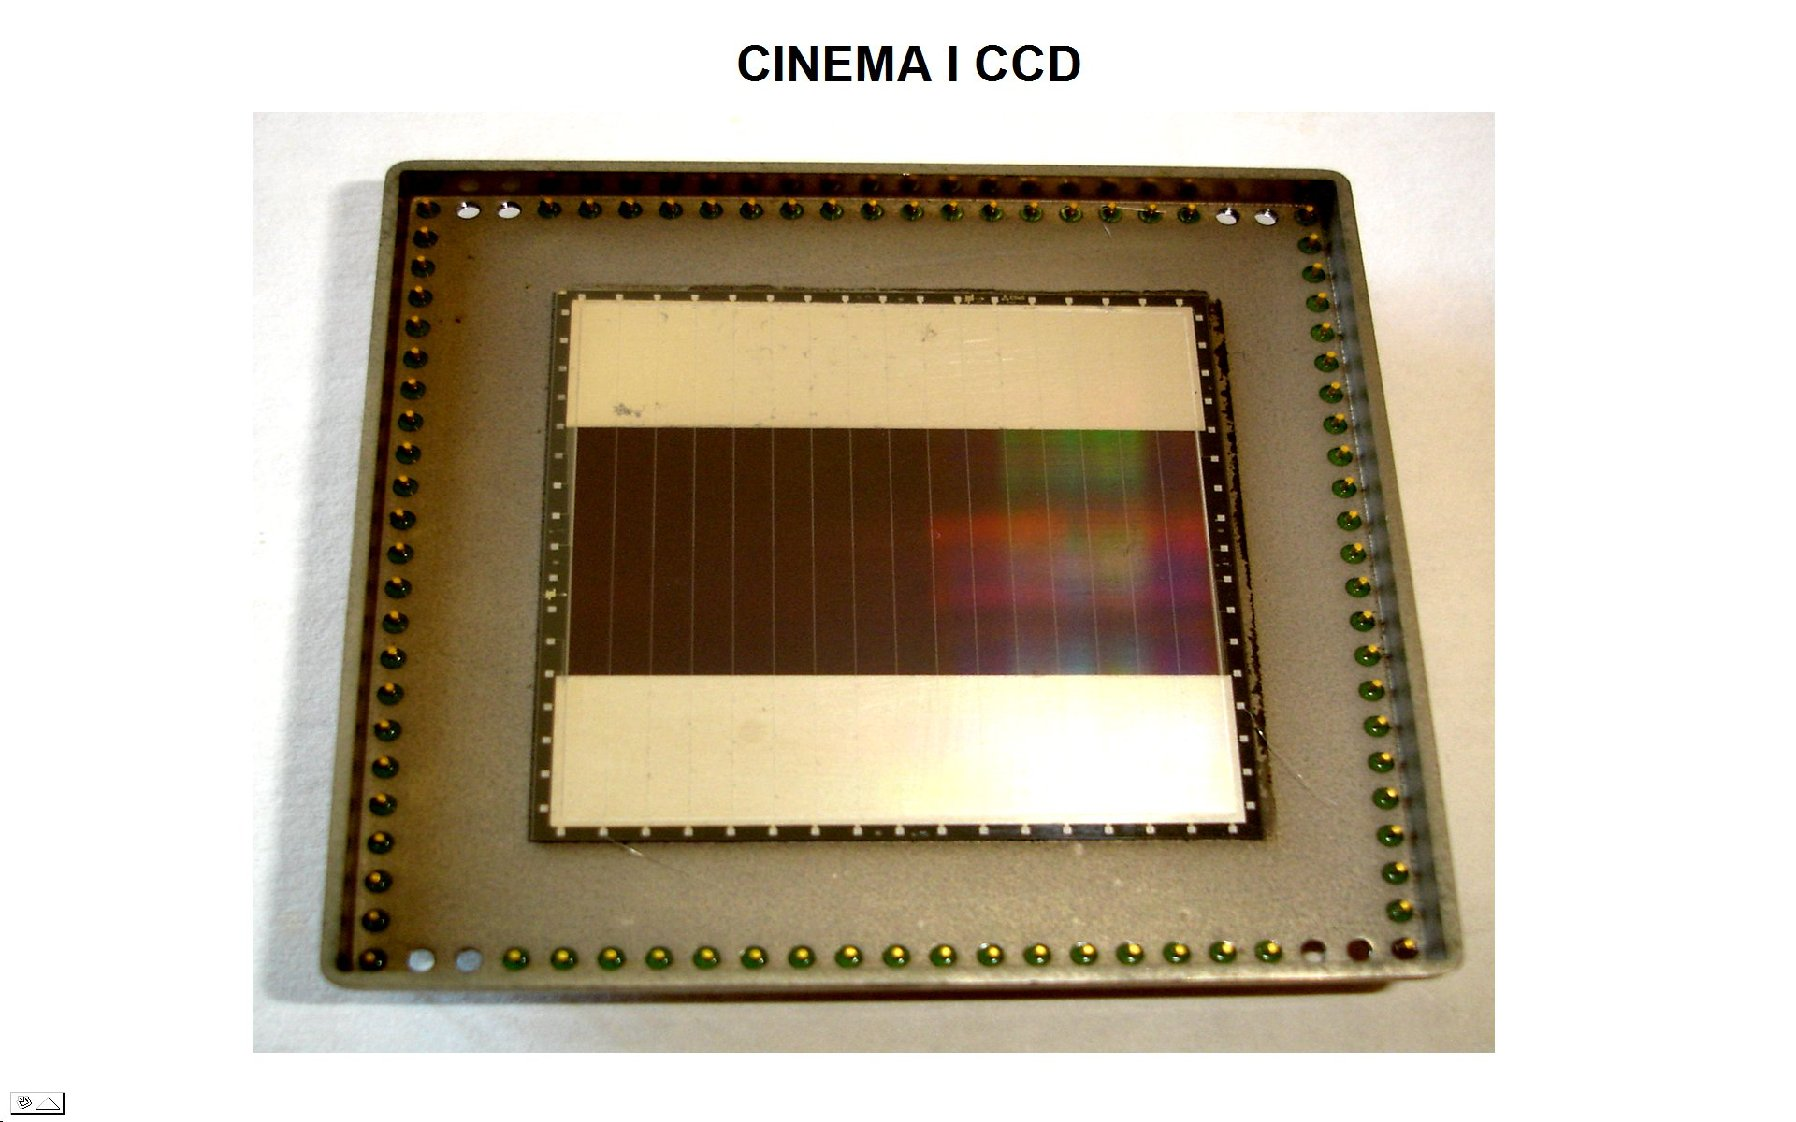 janesick Cinema I commercial CCD imager